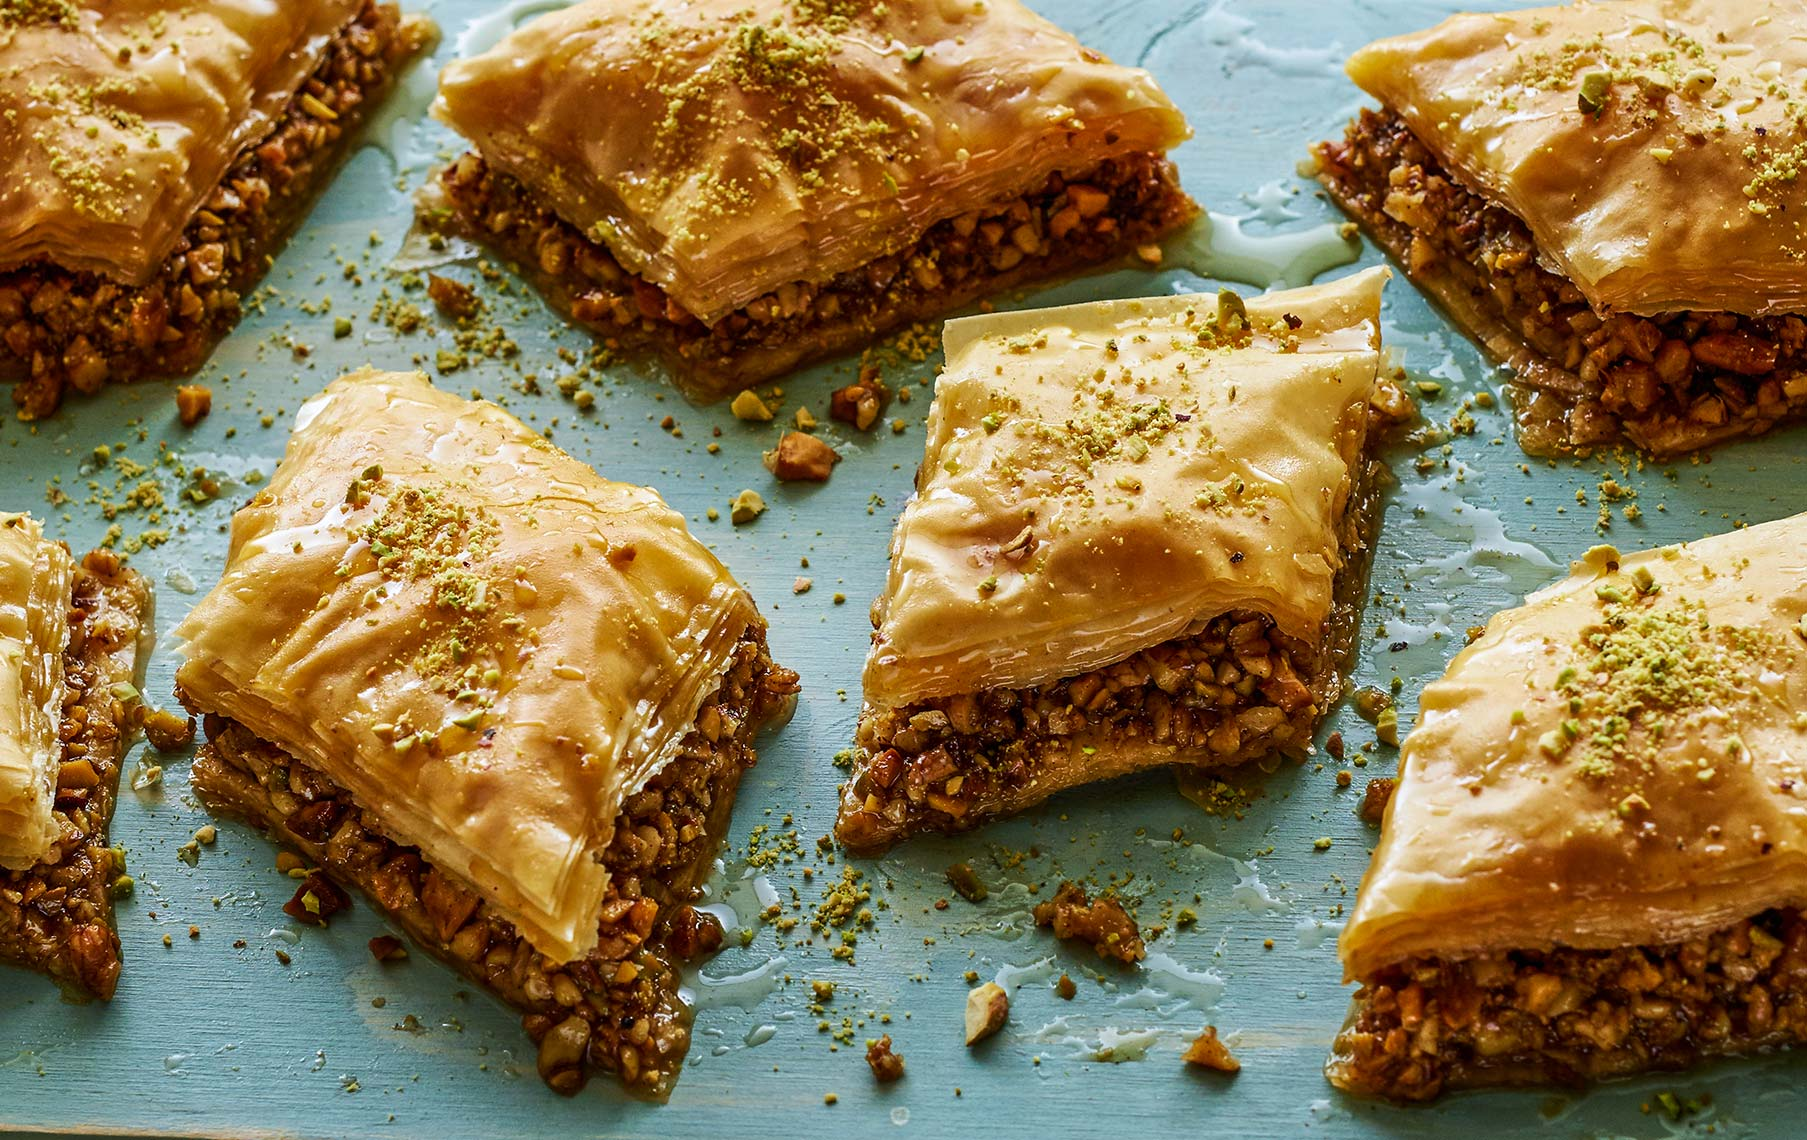 Home made Baklava | Colin Campbell - Food Photographer